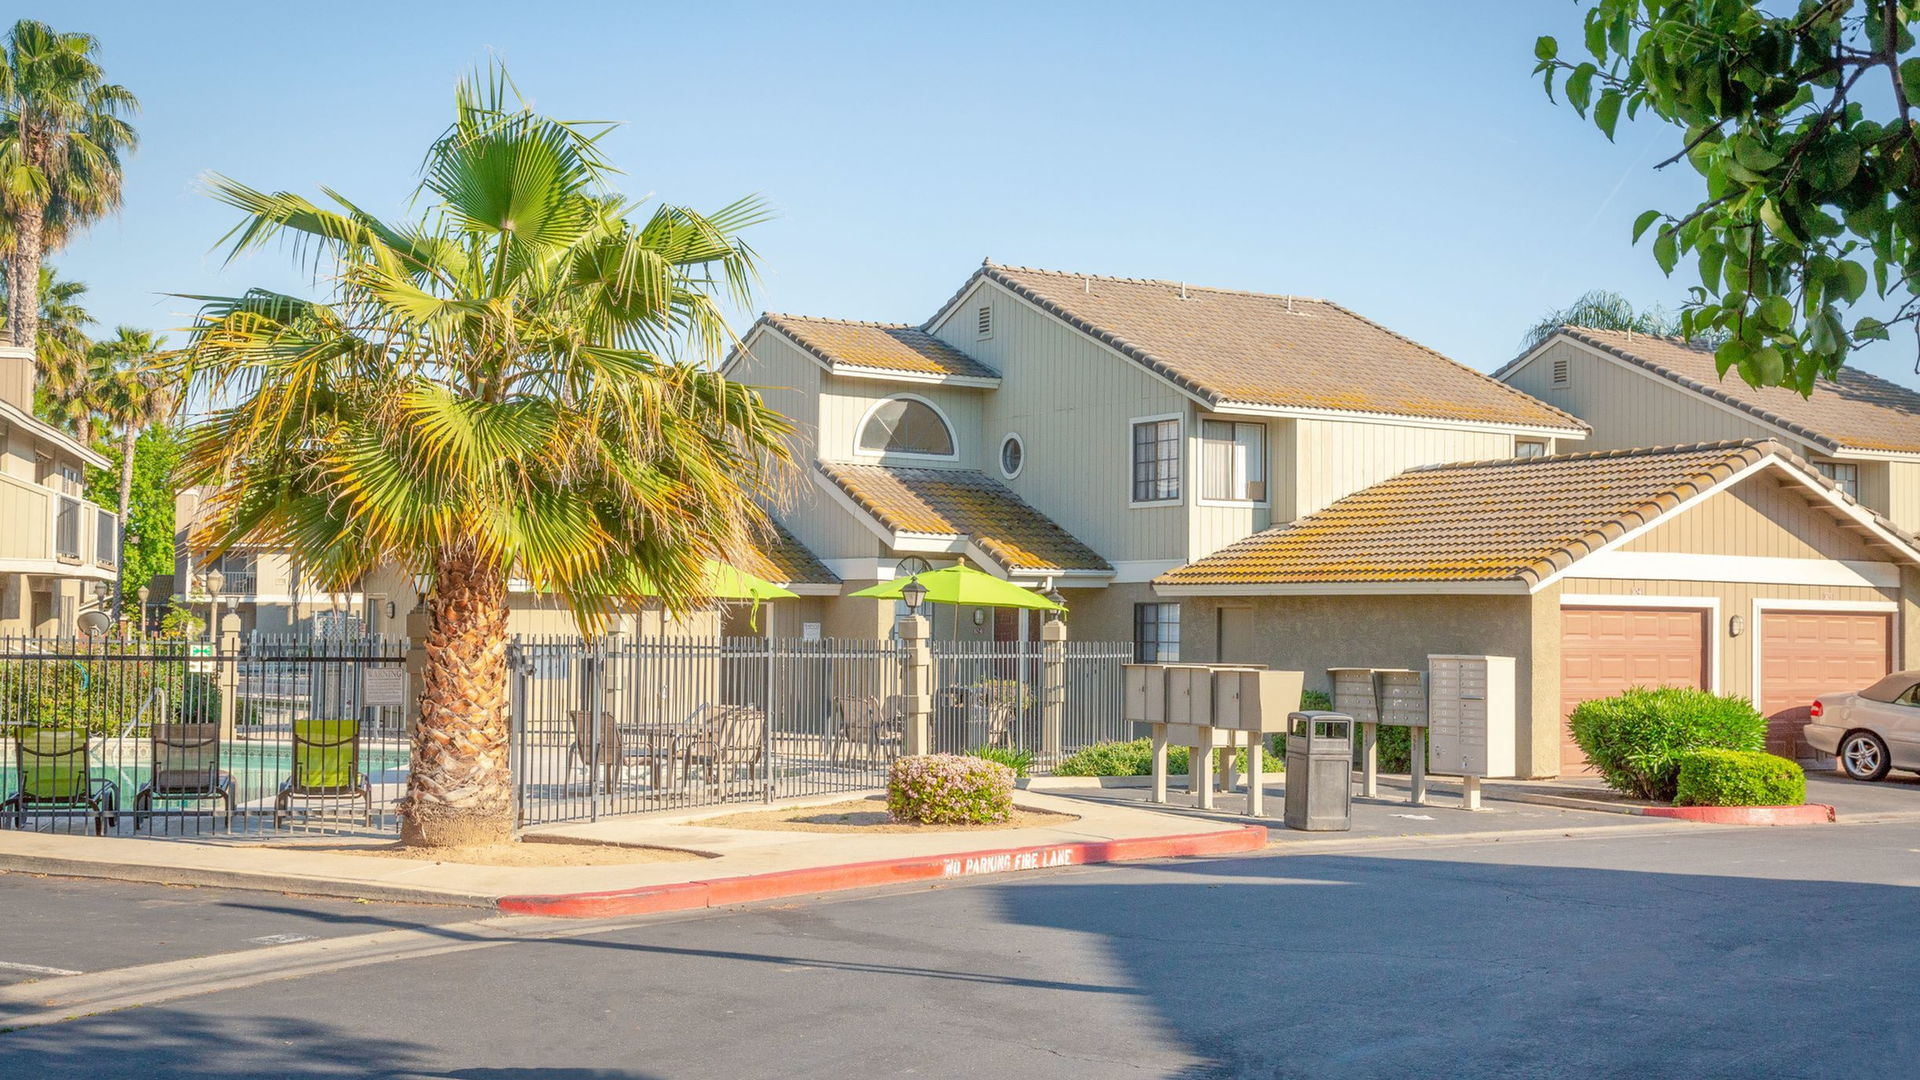 198 Apartments for Rent under $1500 in Fresno, CA